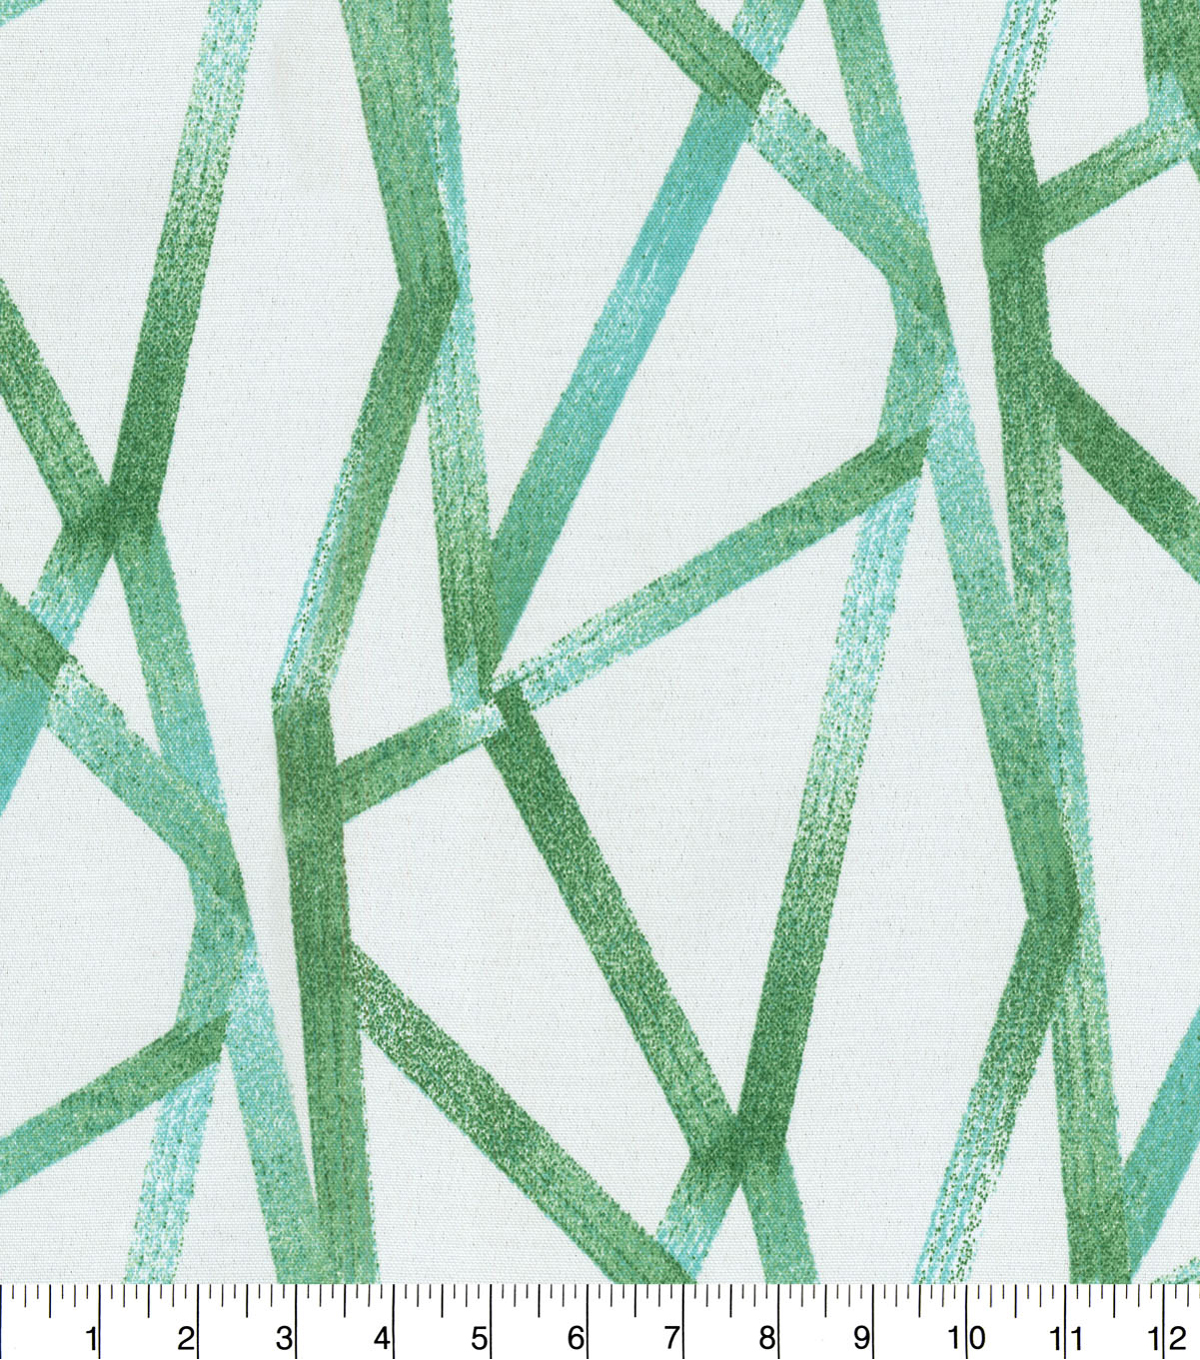 Genevieve Gorder Outdoor Fabric 9\u0022x9\u0022 Swatch-Intersections Palm